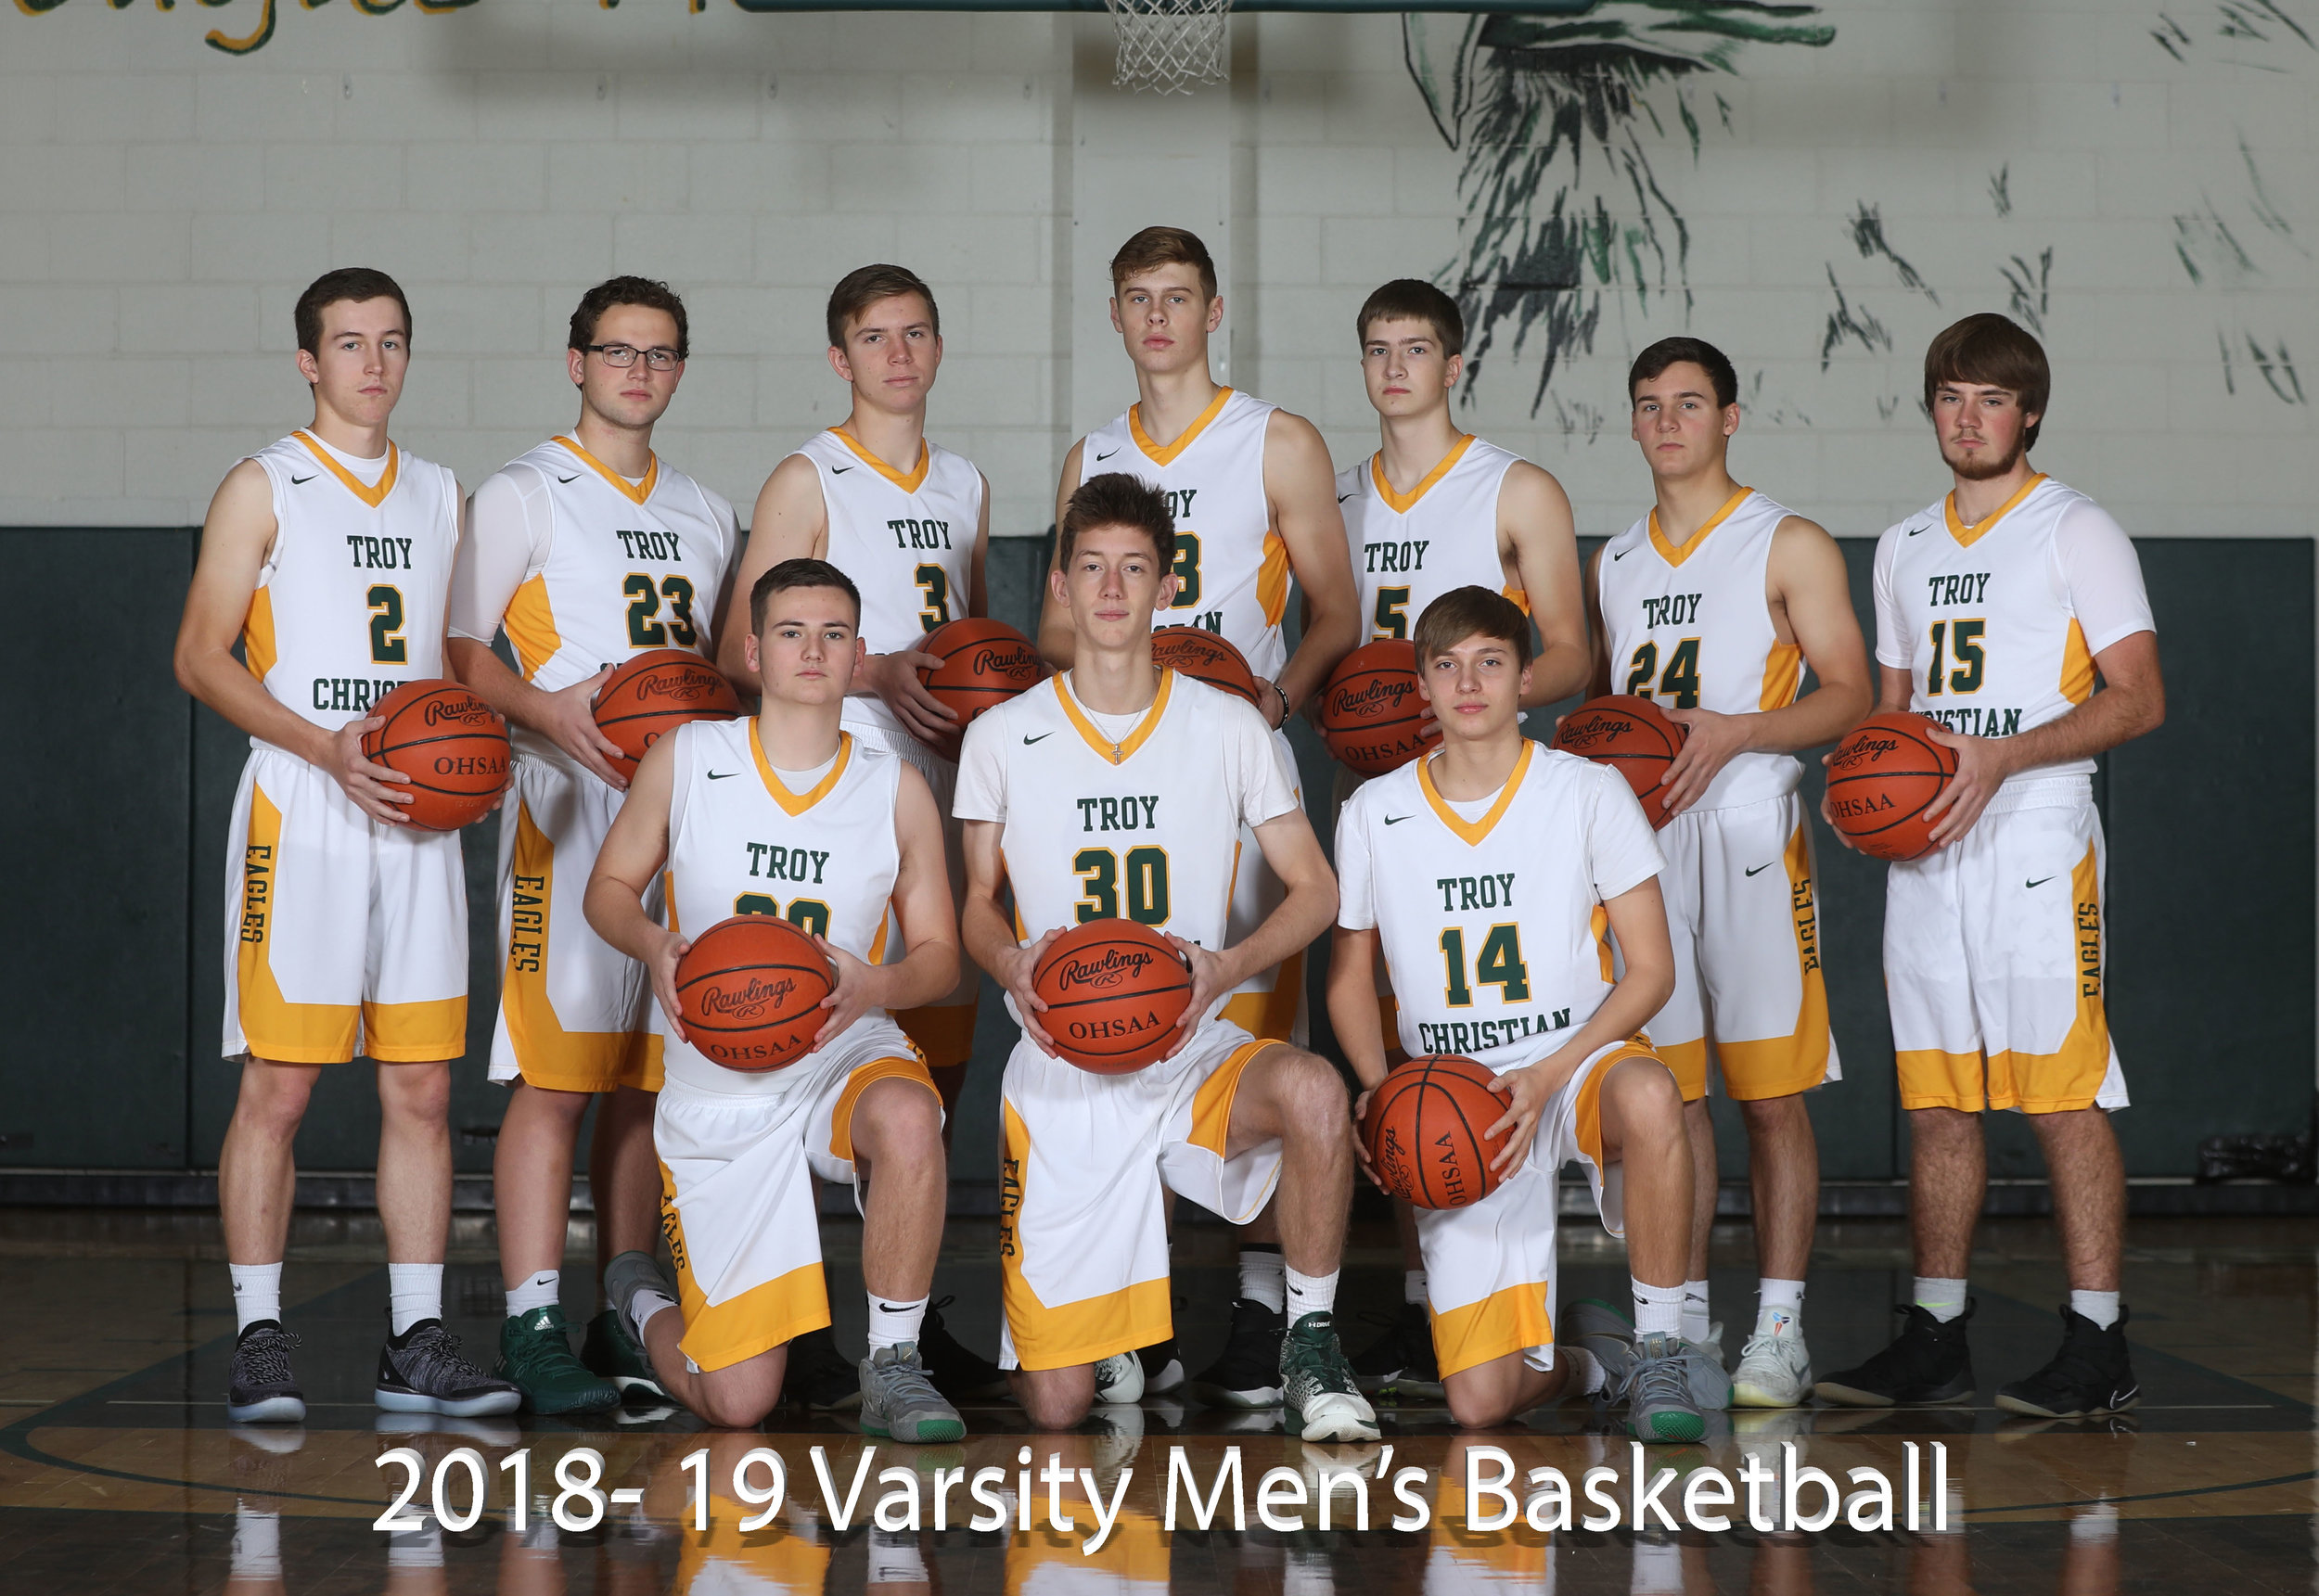 2017-18 Varsity Men's Basketball